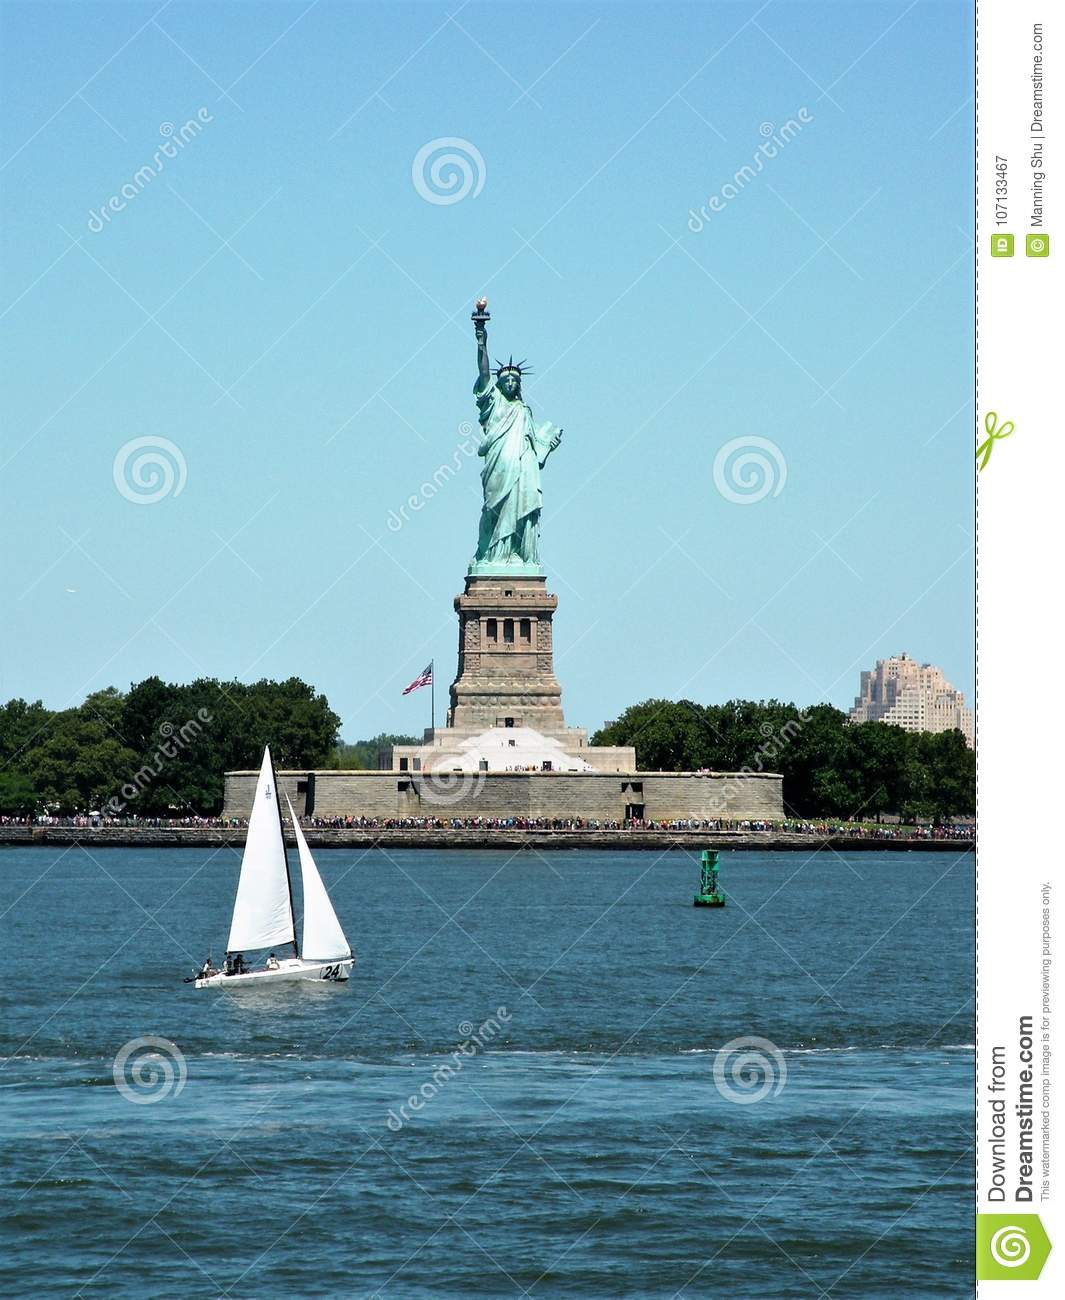 Statue of Liberty Seen from Harbor